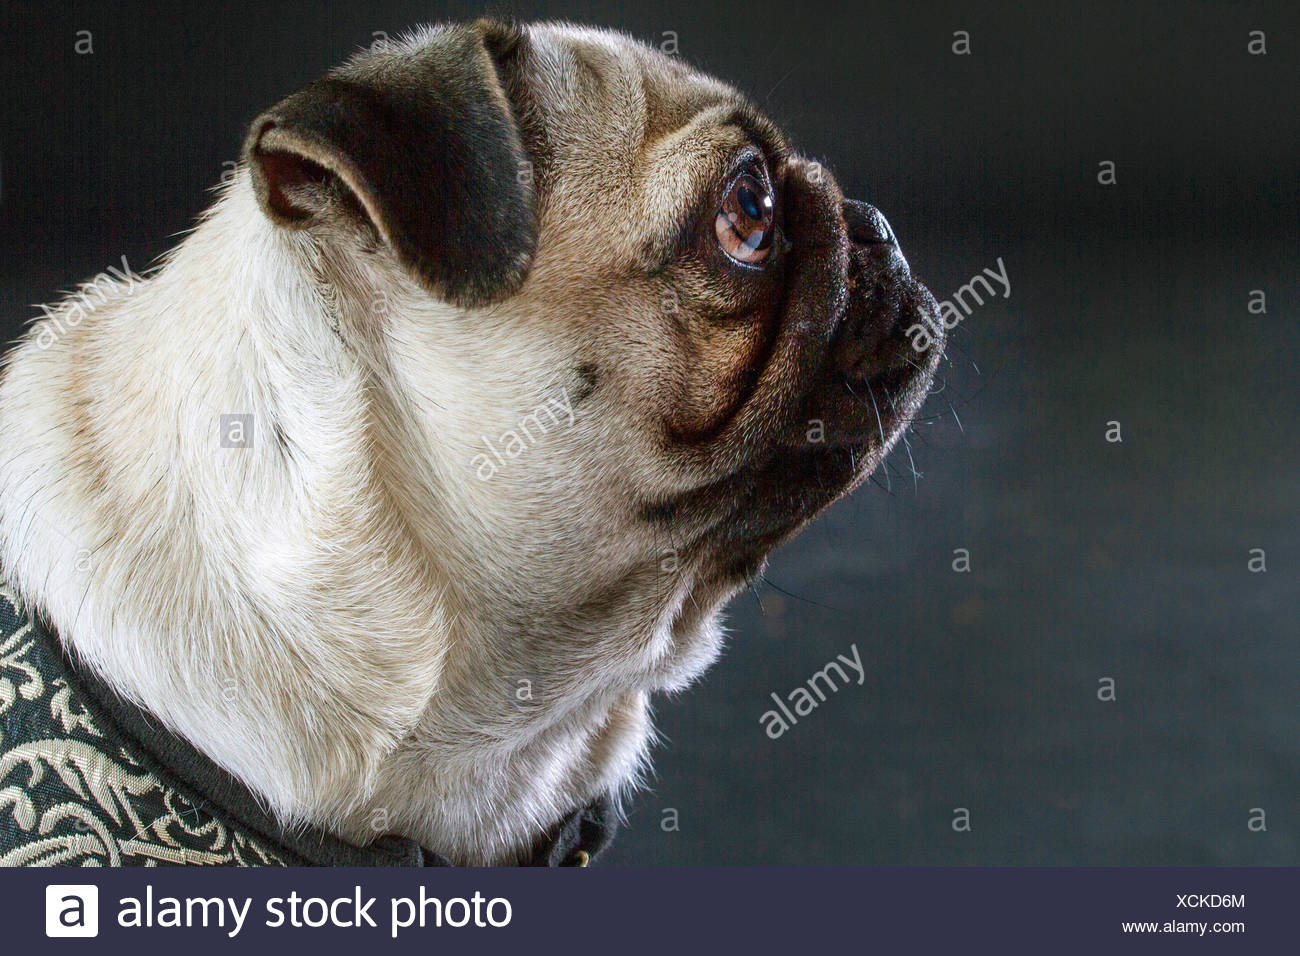 Le PUG (Canis lupus f. familiaris), portrait en face de fond noir, side view Photo Stock